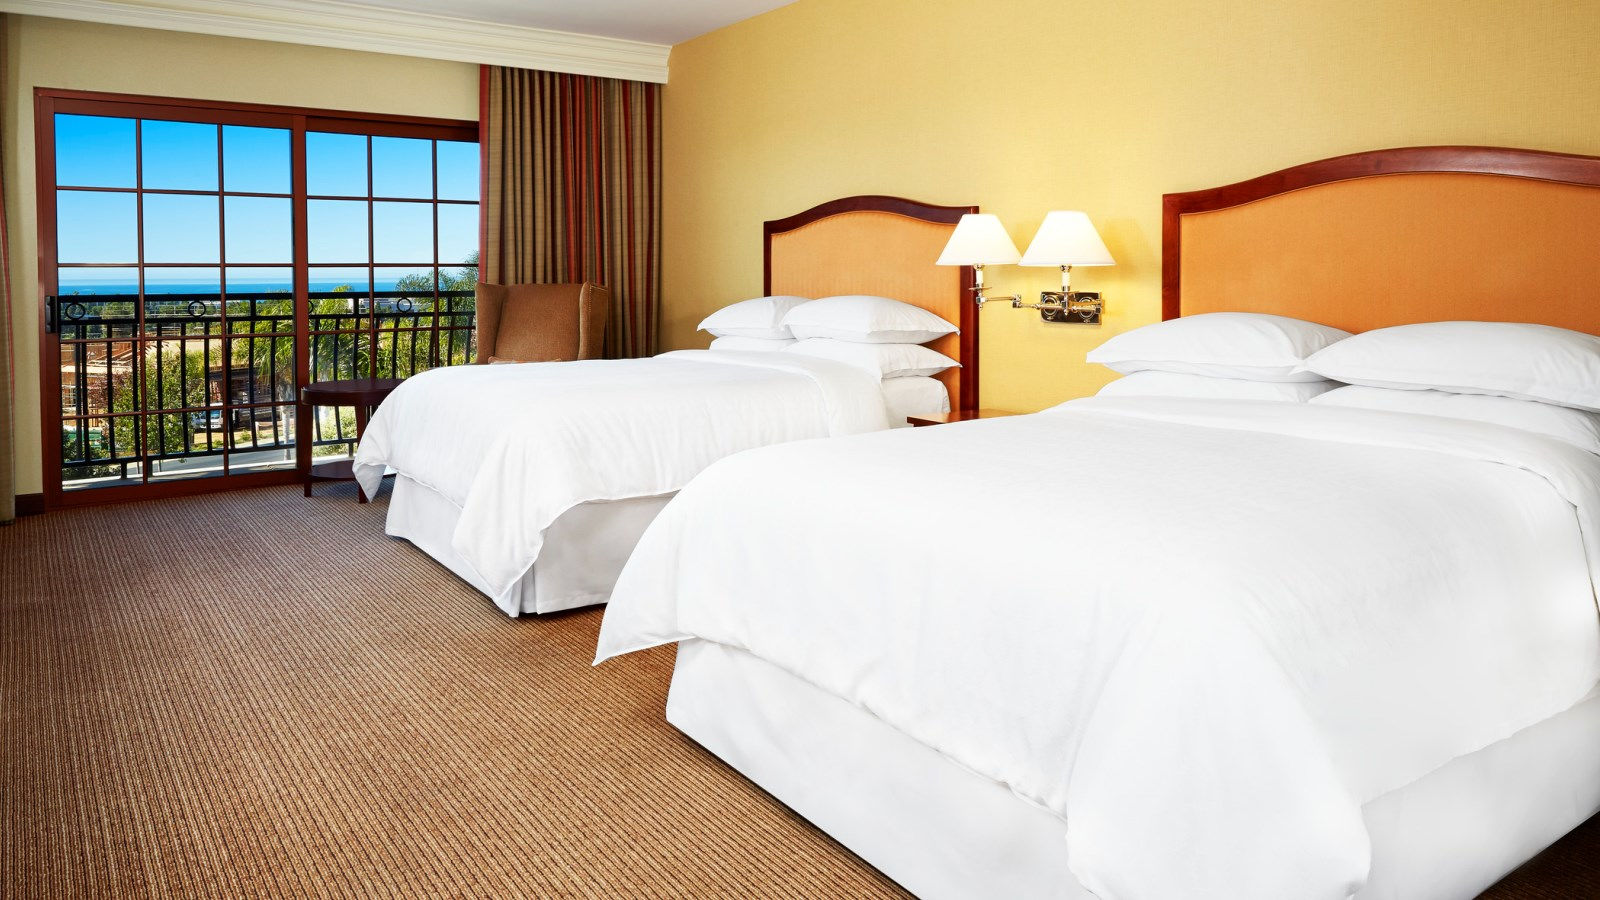 Coastal View Accommodations - Sheraton Carlsbad Resort & Spa